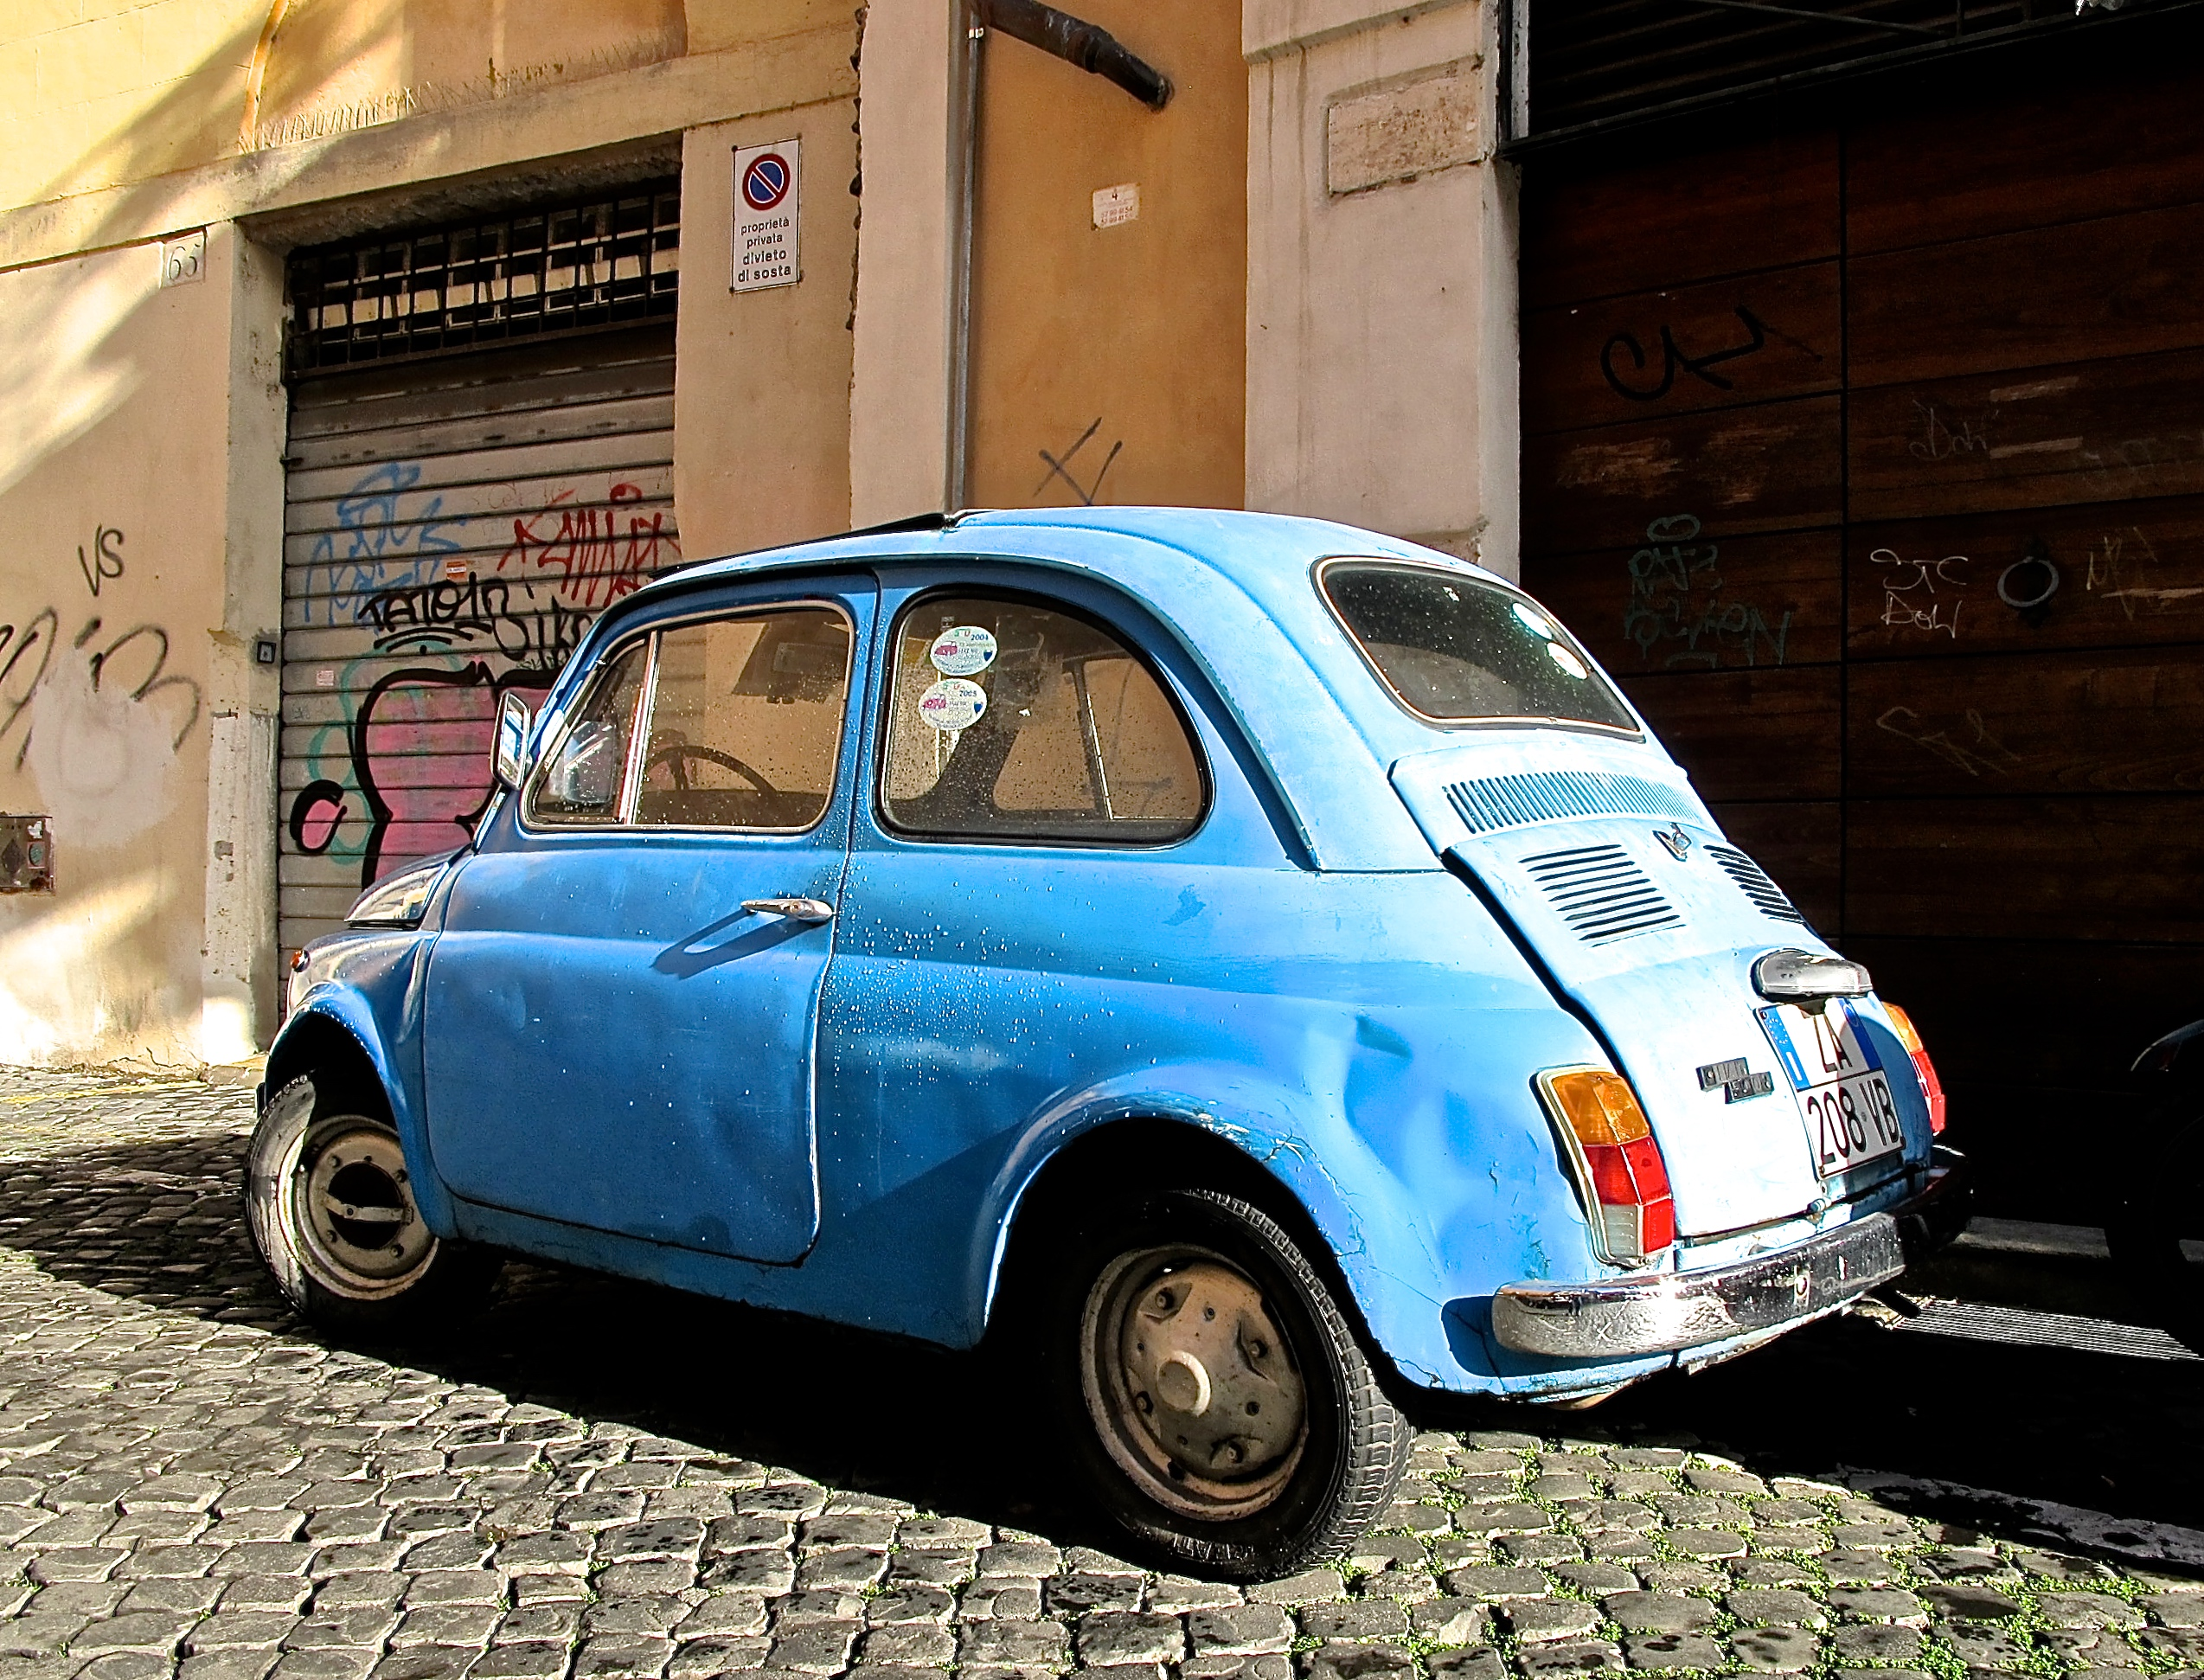 iconic fiat 500 in central rome atx car pictures real pics from austin tx streets backyards. Black Bedroom Furniture Sets. Home Design Ideas